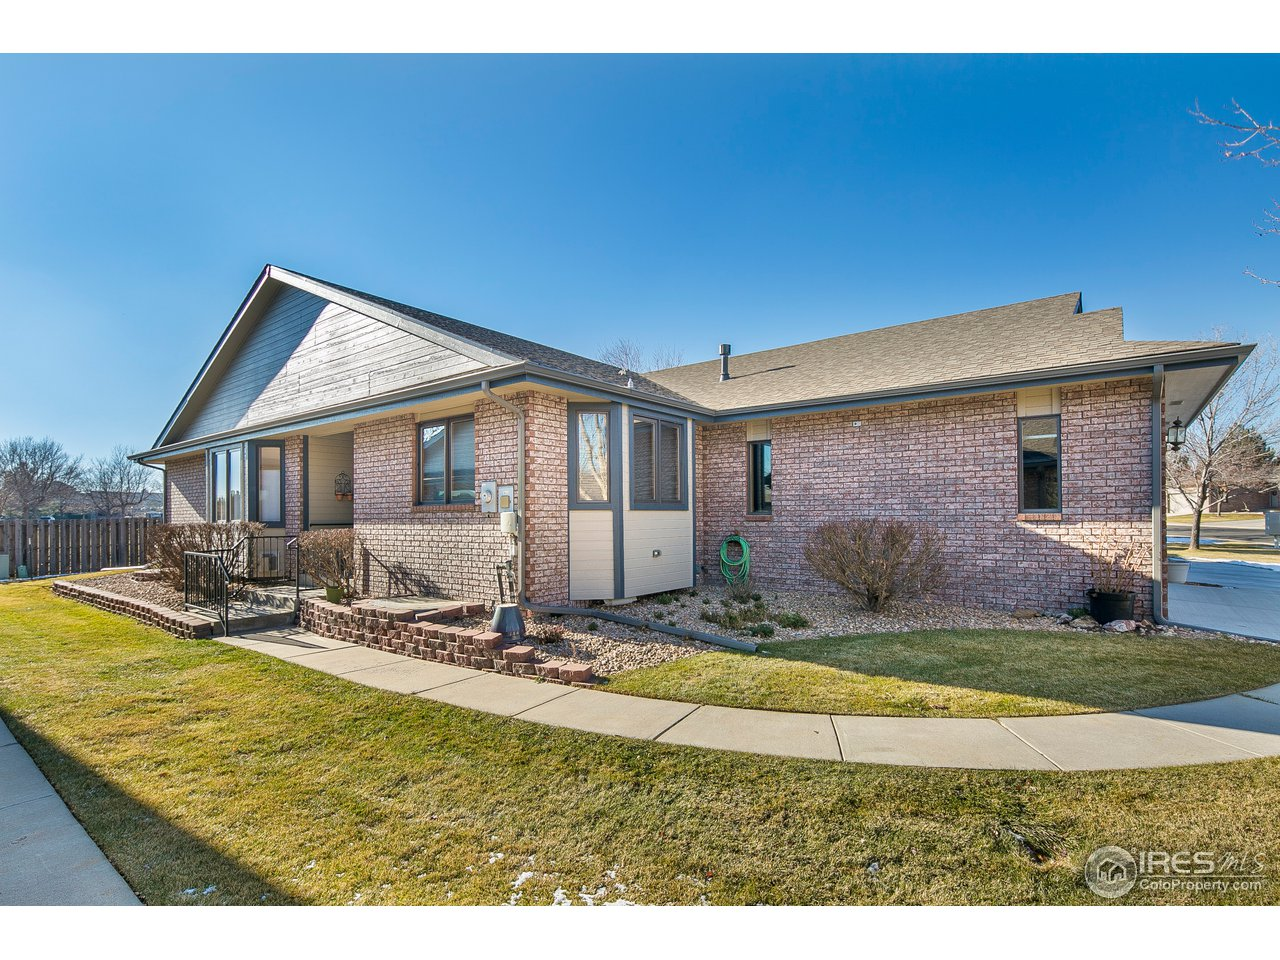 4638 23RD ST, GREELEY, CO 80634